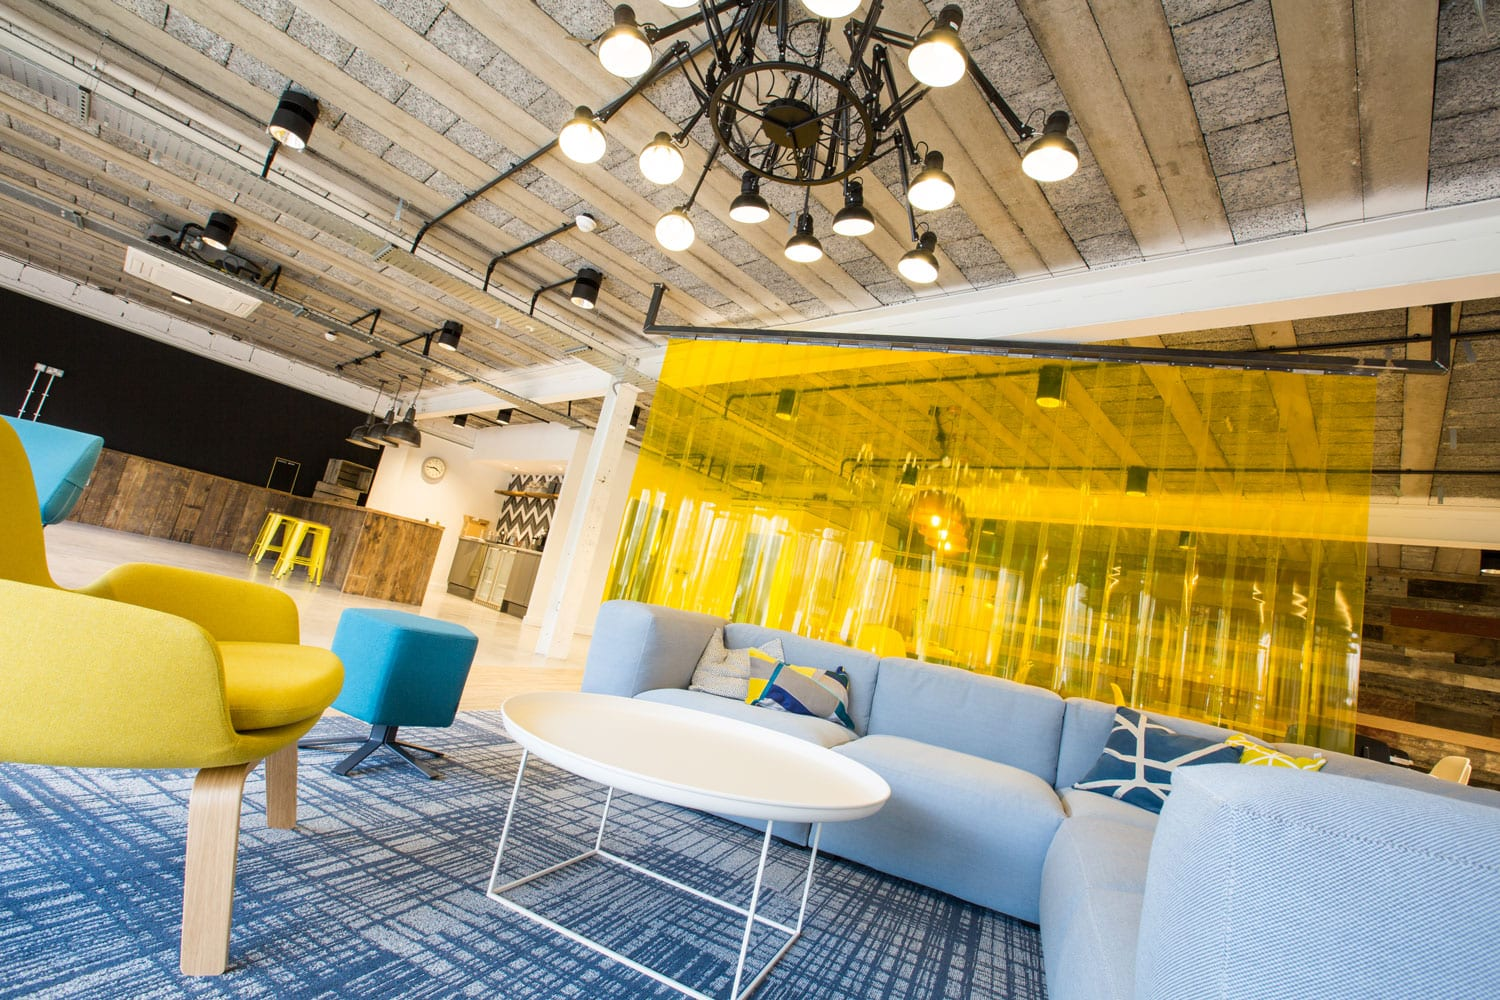 We Are A Creative Commercial Interior Design Consultancy Based In Peterborough Specialising The Of Workspaces And Leisure Environments